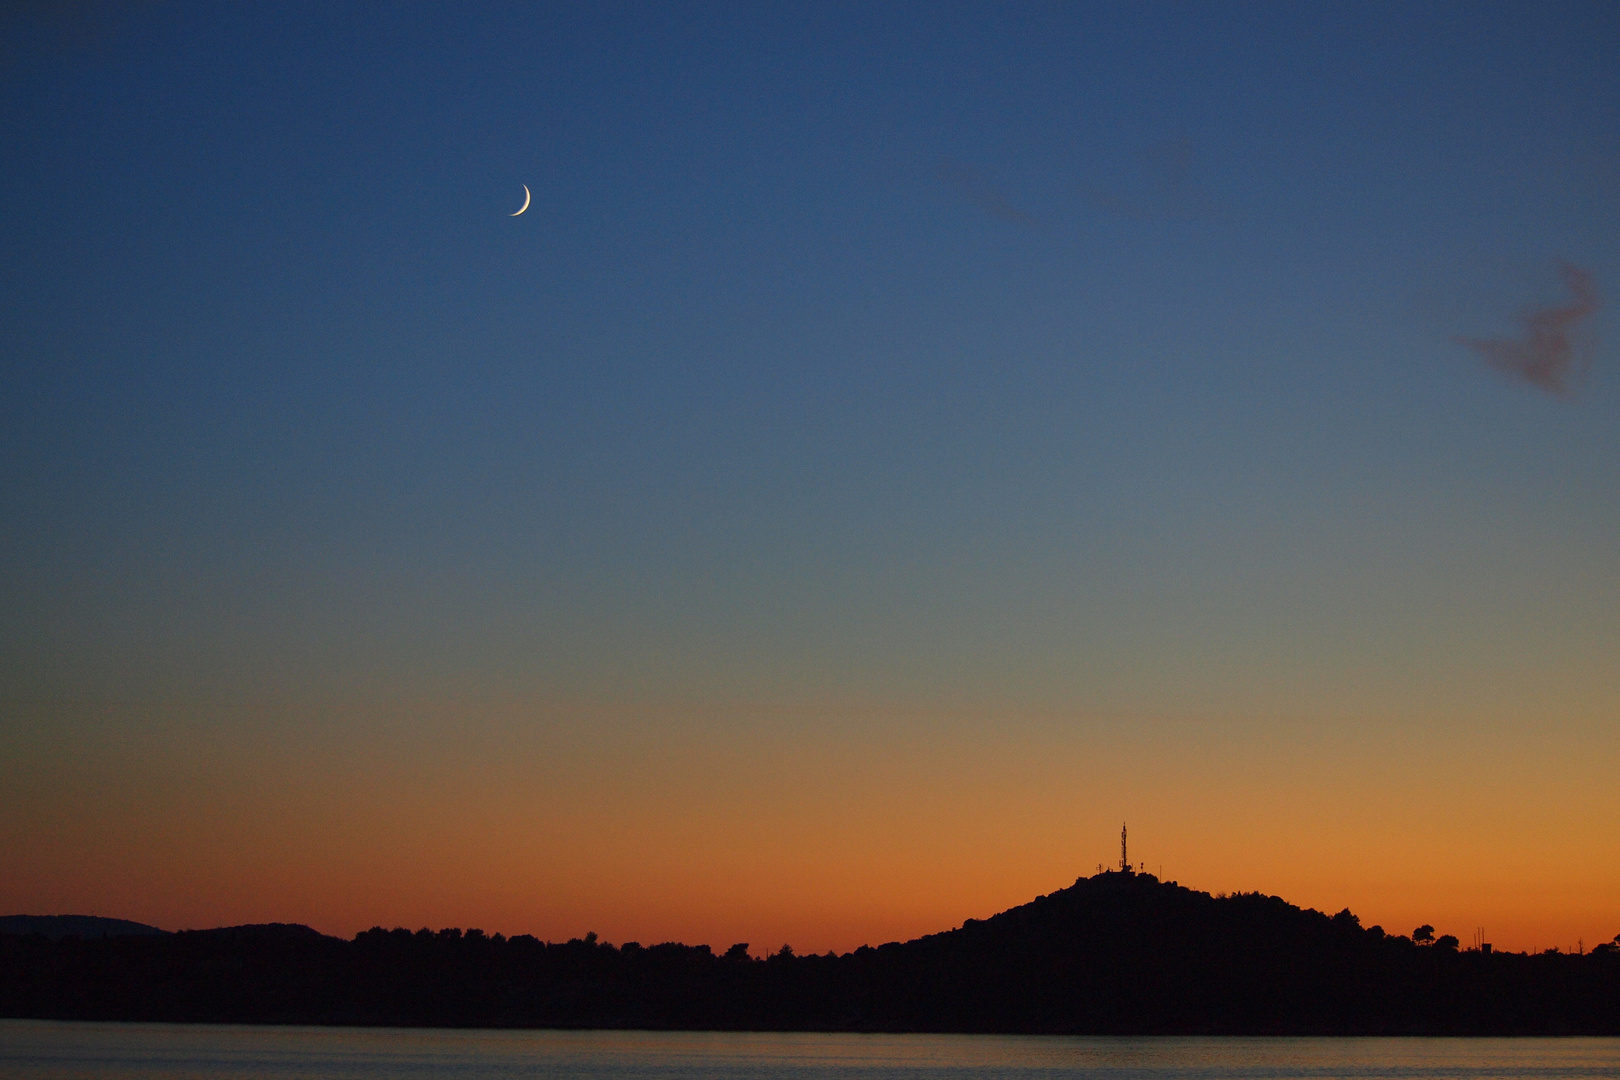 Moonraise and Sunset